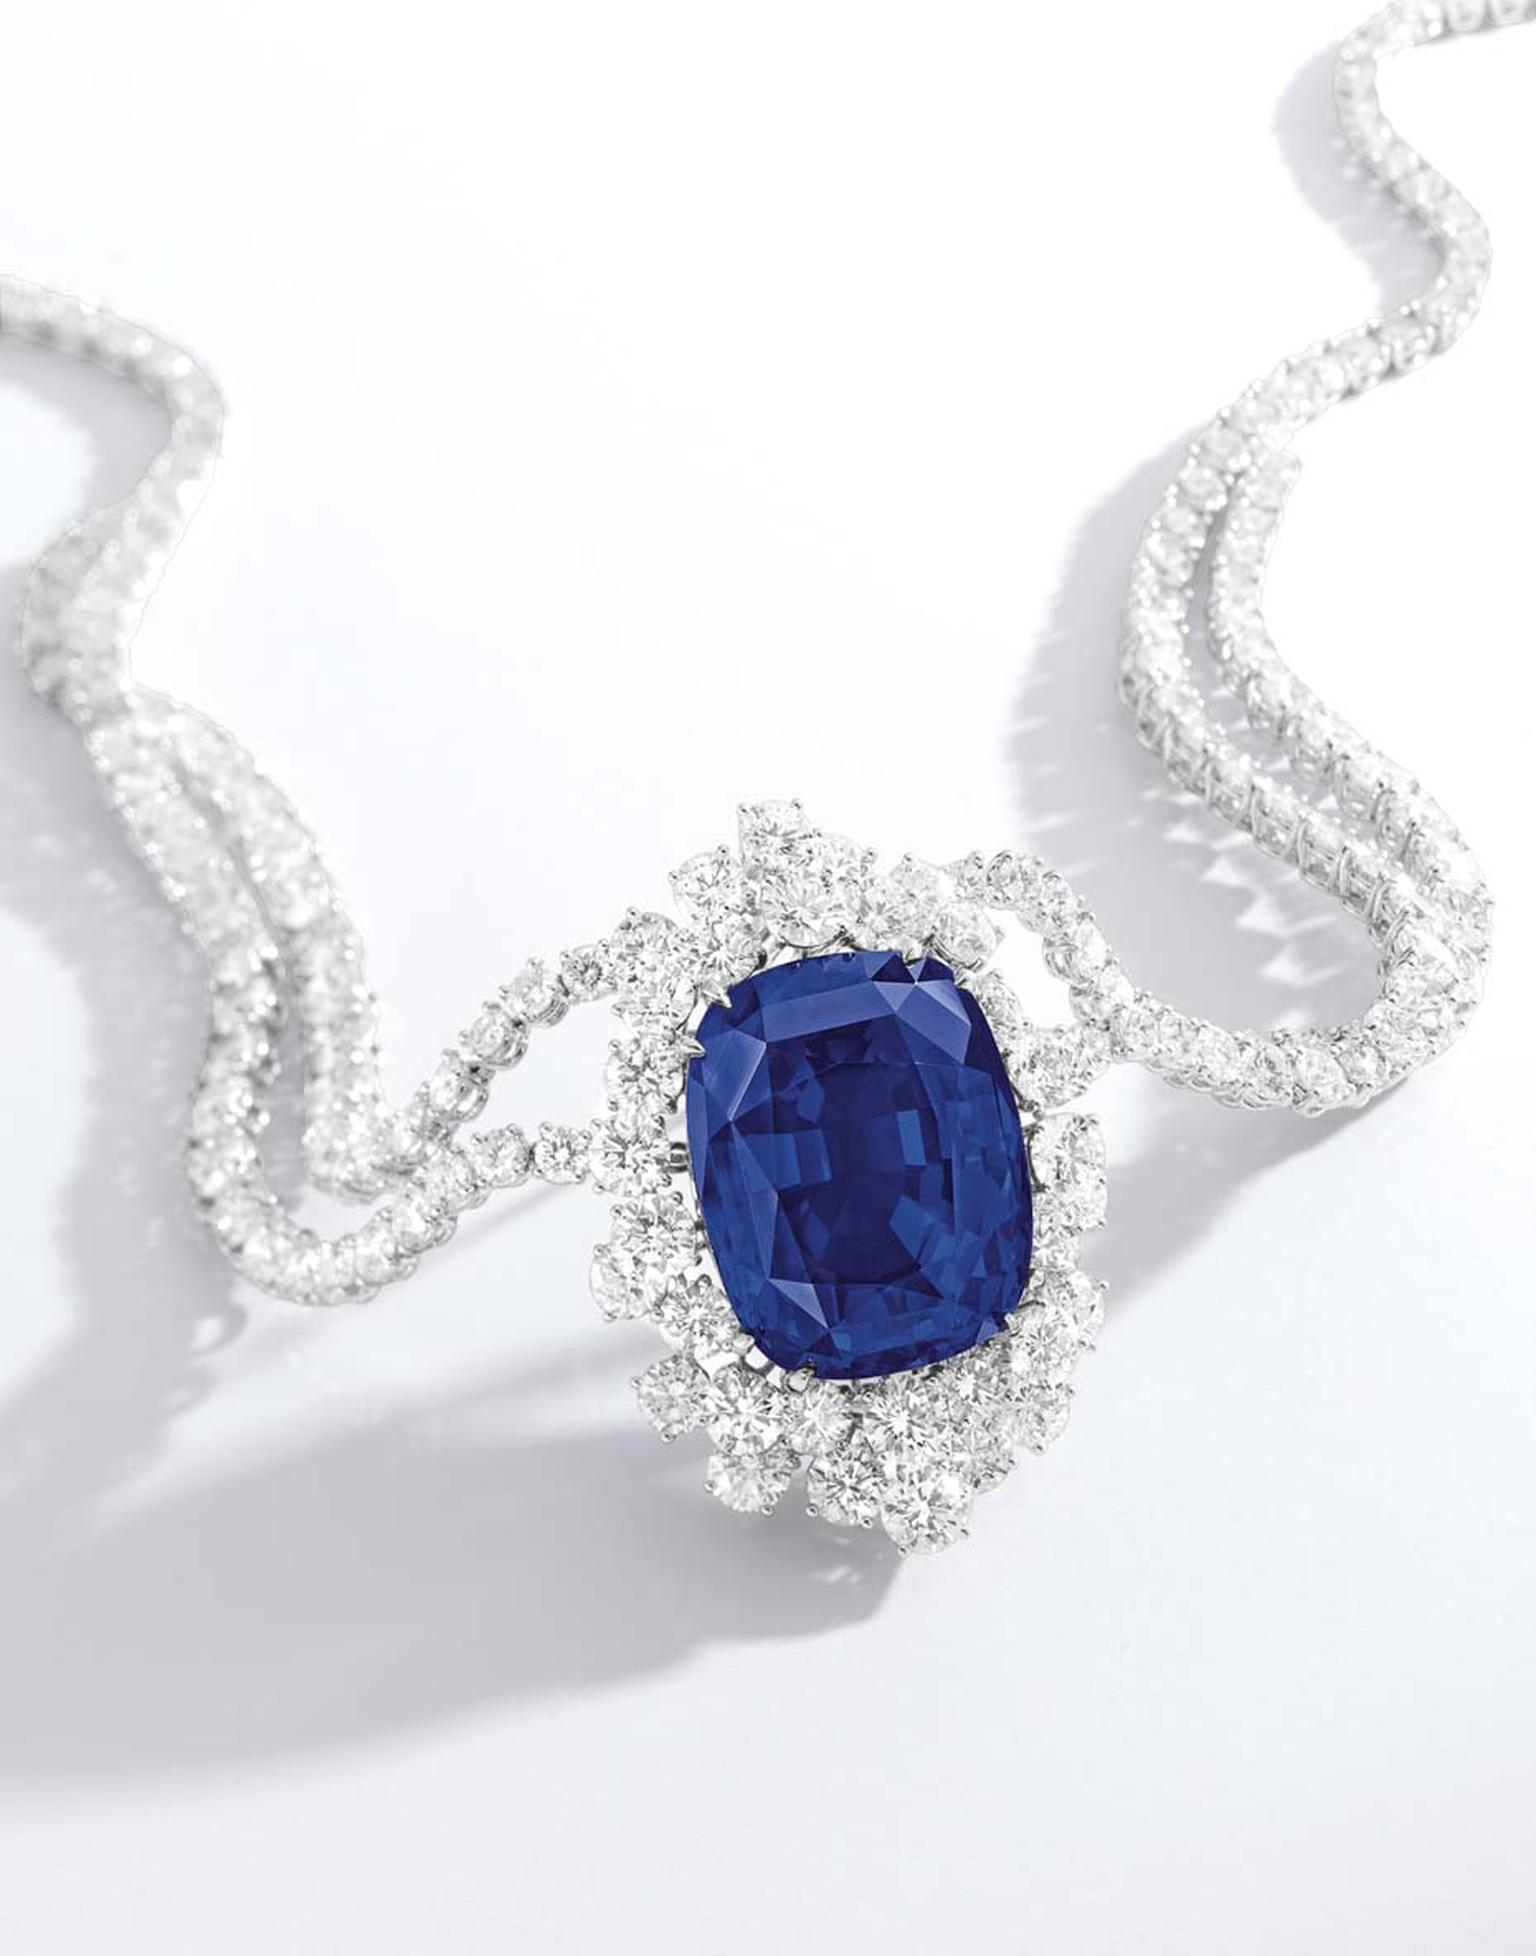 A royal blue sapphire and diamond necklace (102.61ct) completely free of heat treatment and virtually inclusion-free was sold for US$4,179,487 million.